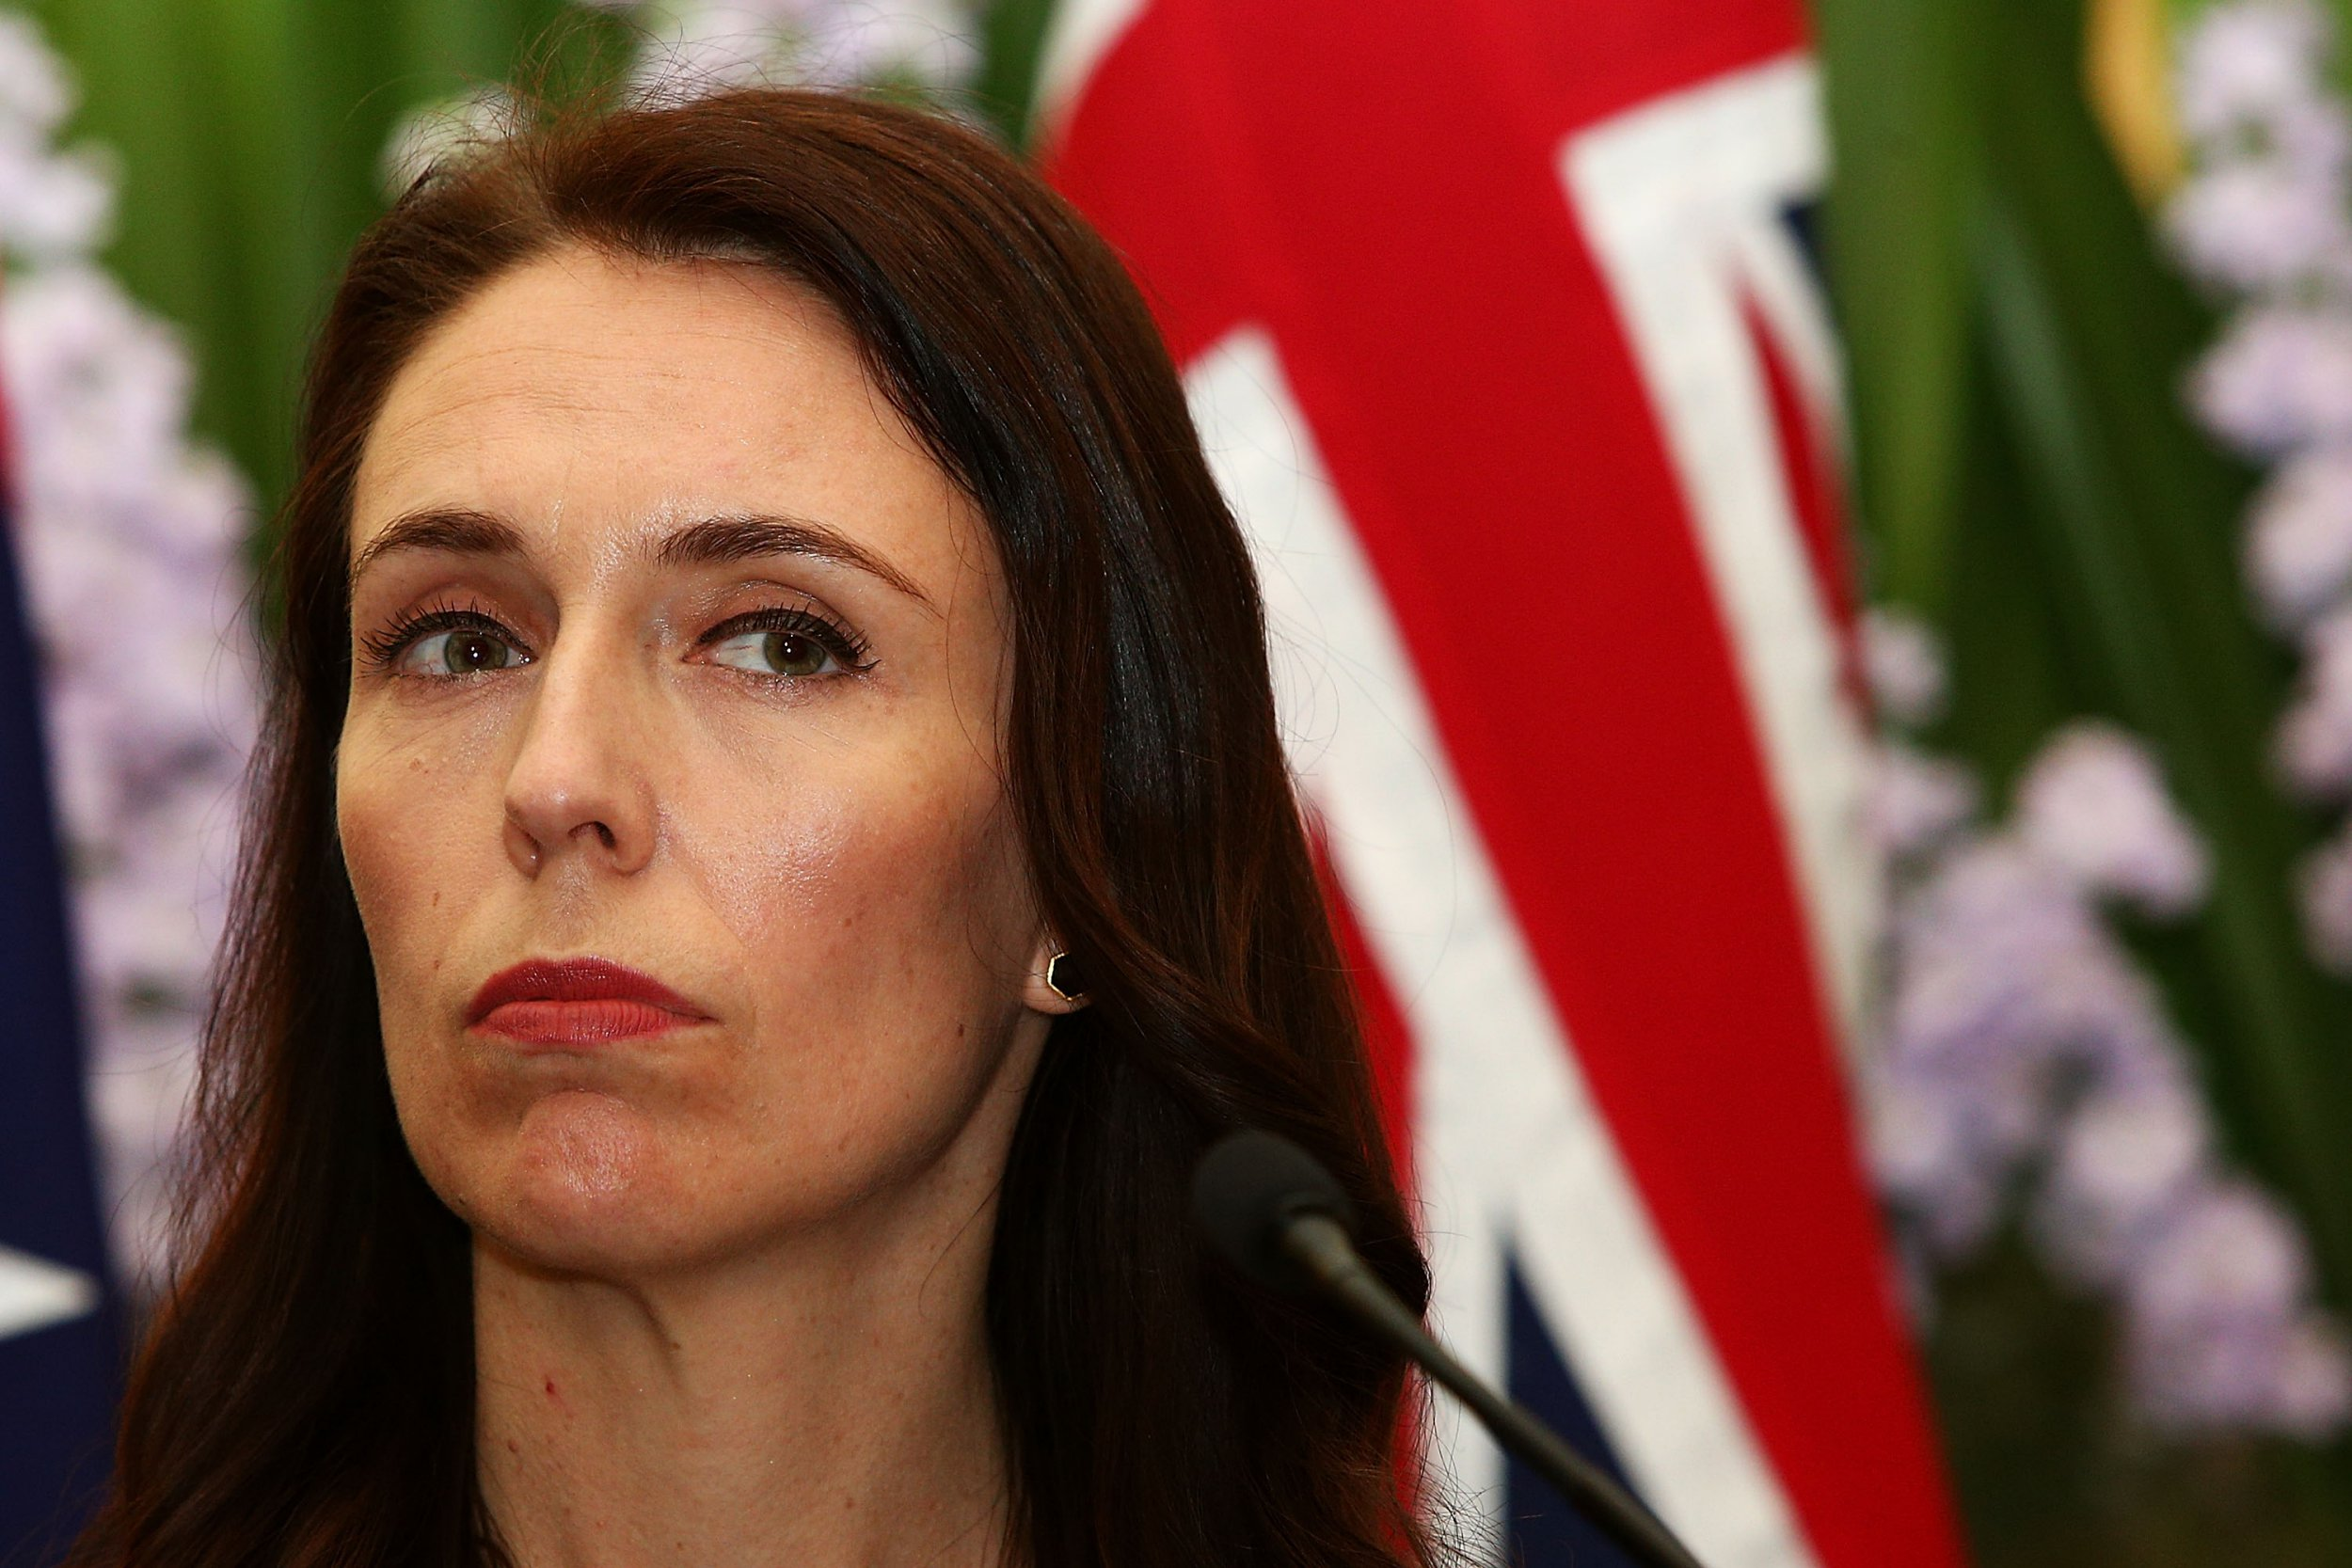 SYDNEY, AUSTRALIA - NOVEMBER 05: New Zealand Prime Minister Jacinda Ardern attends a press conference at Kirribilli House on November 5, 2017 in Sydney, Australia. The new New Zealand Prime Minister is on a one-day visit to Australia. (Photo by Lisa Maree Williams/Getty Images)